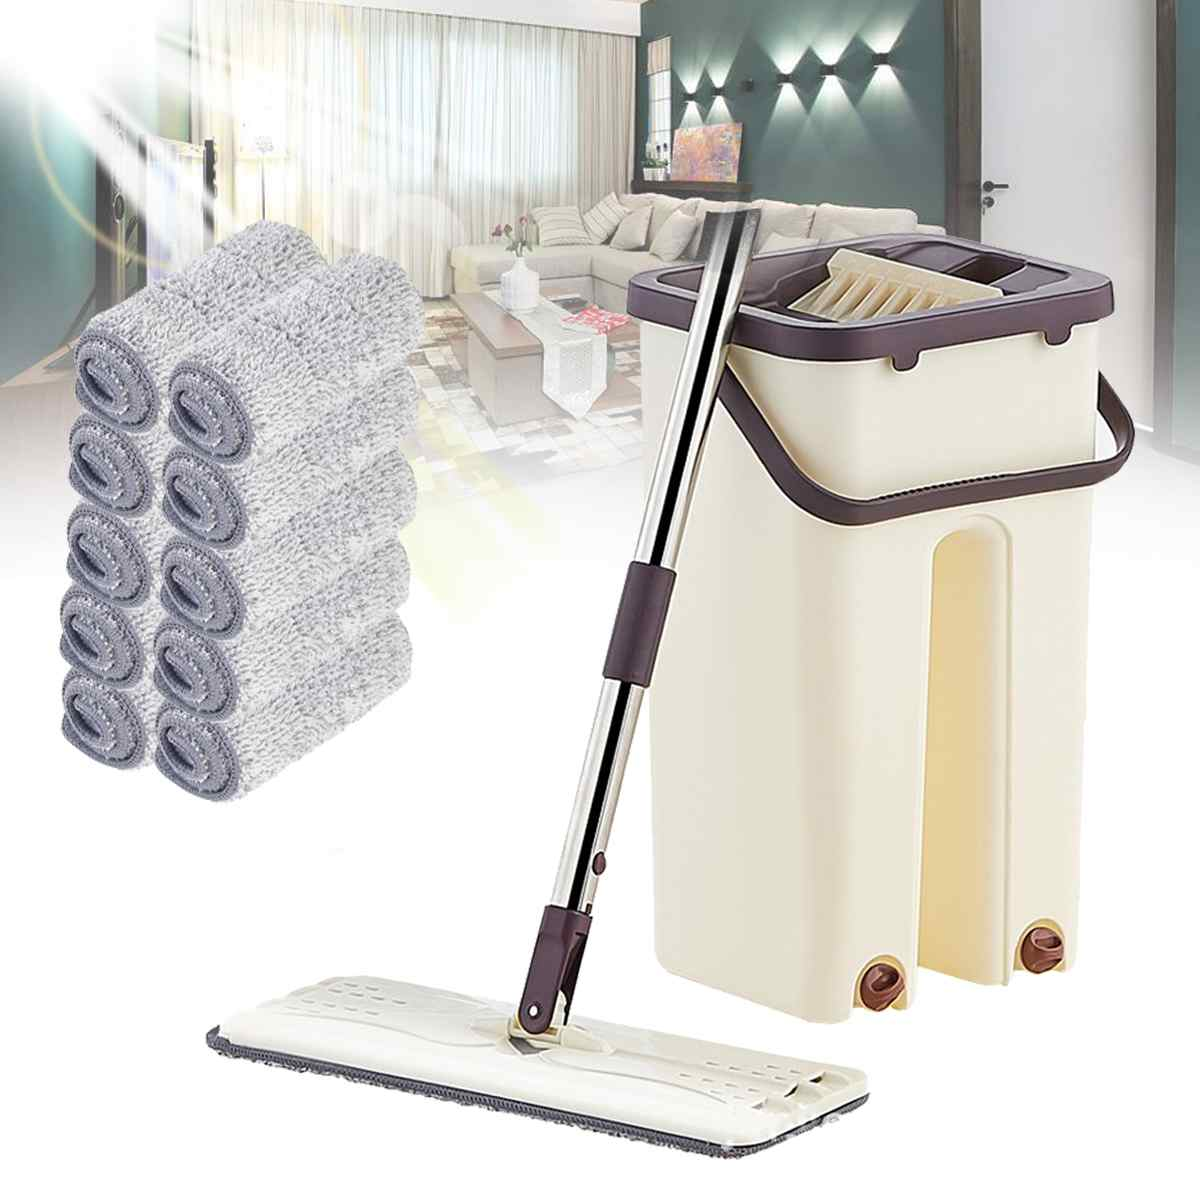 Flat Squeeze Mop with Bucket Hand Free Wringing Wet Dry Usage Spray House Floor Cleaning Lazy Mops Reusable Microfiber Pads